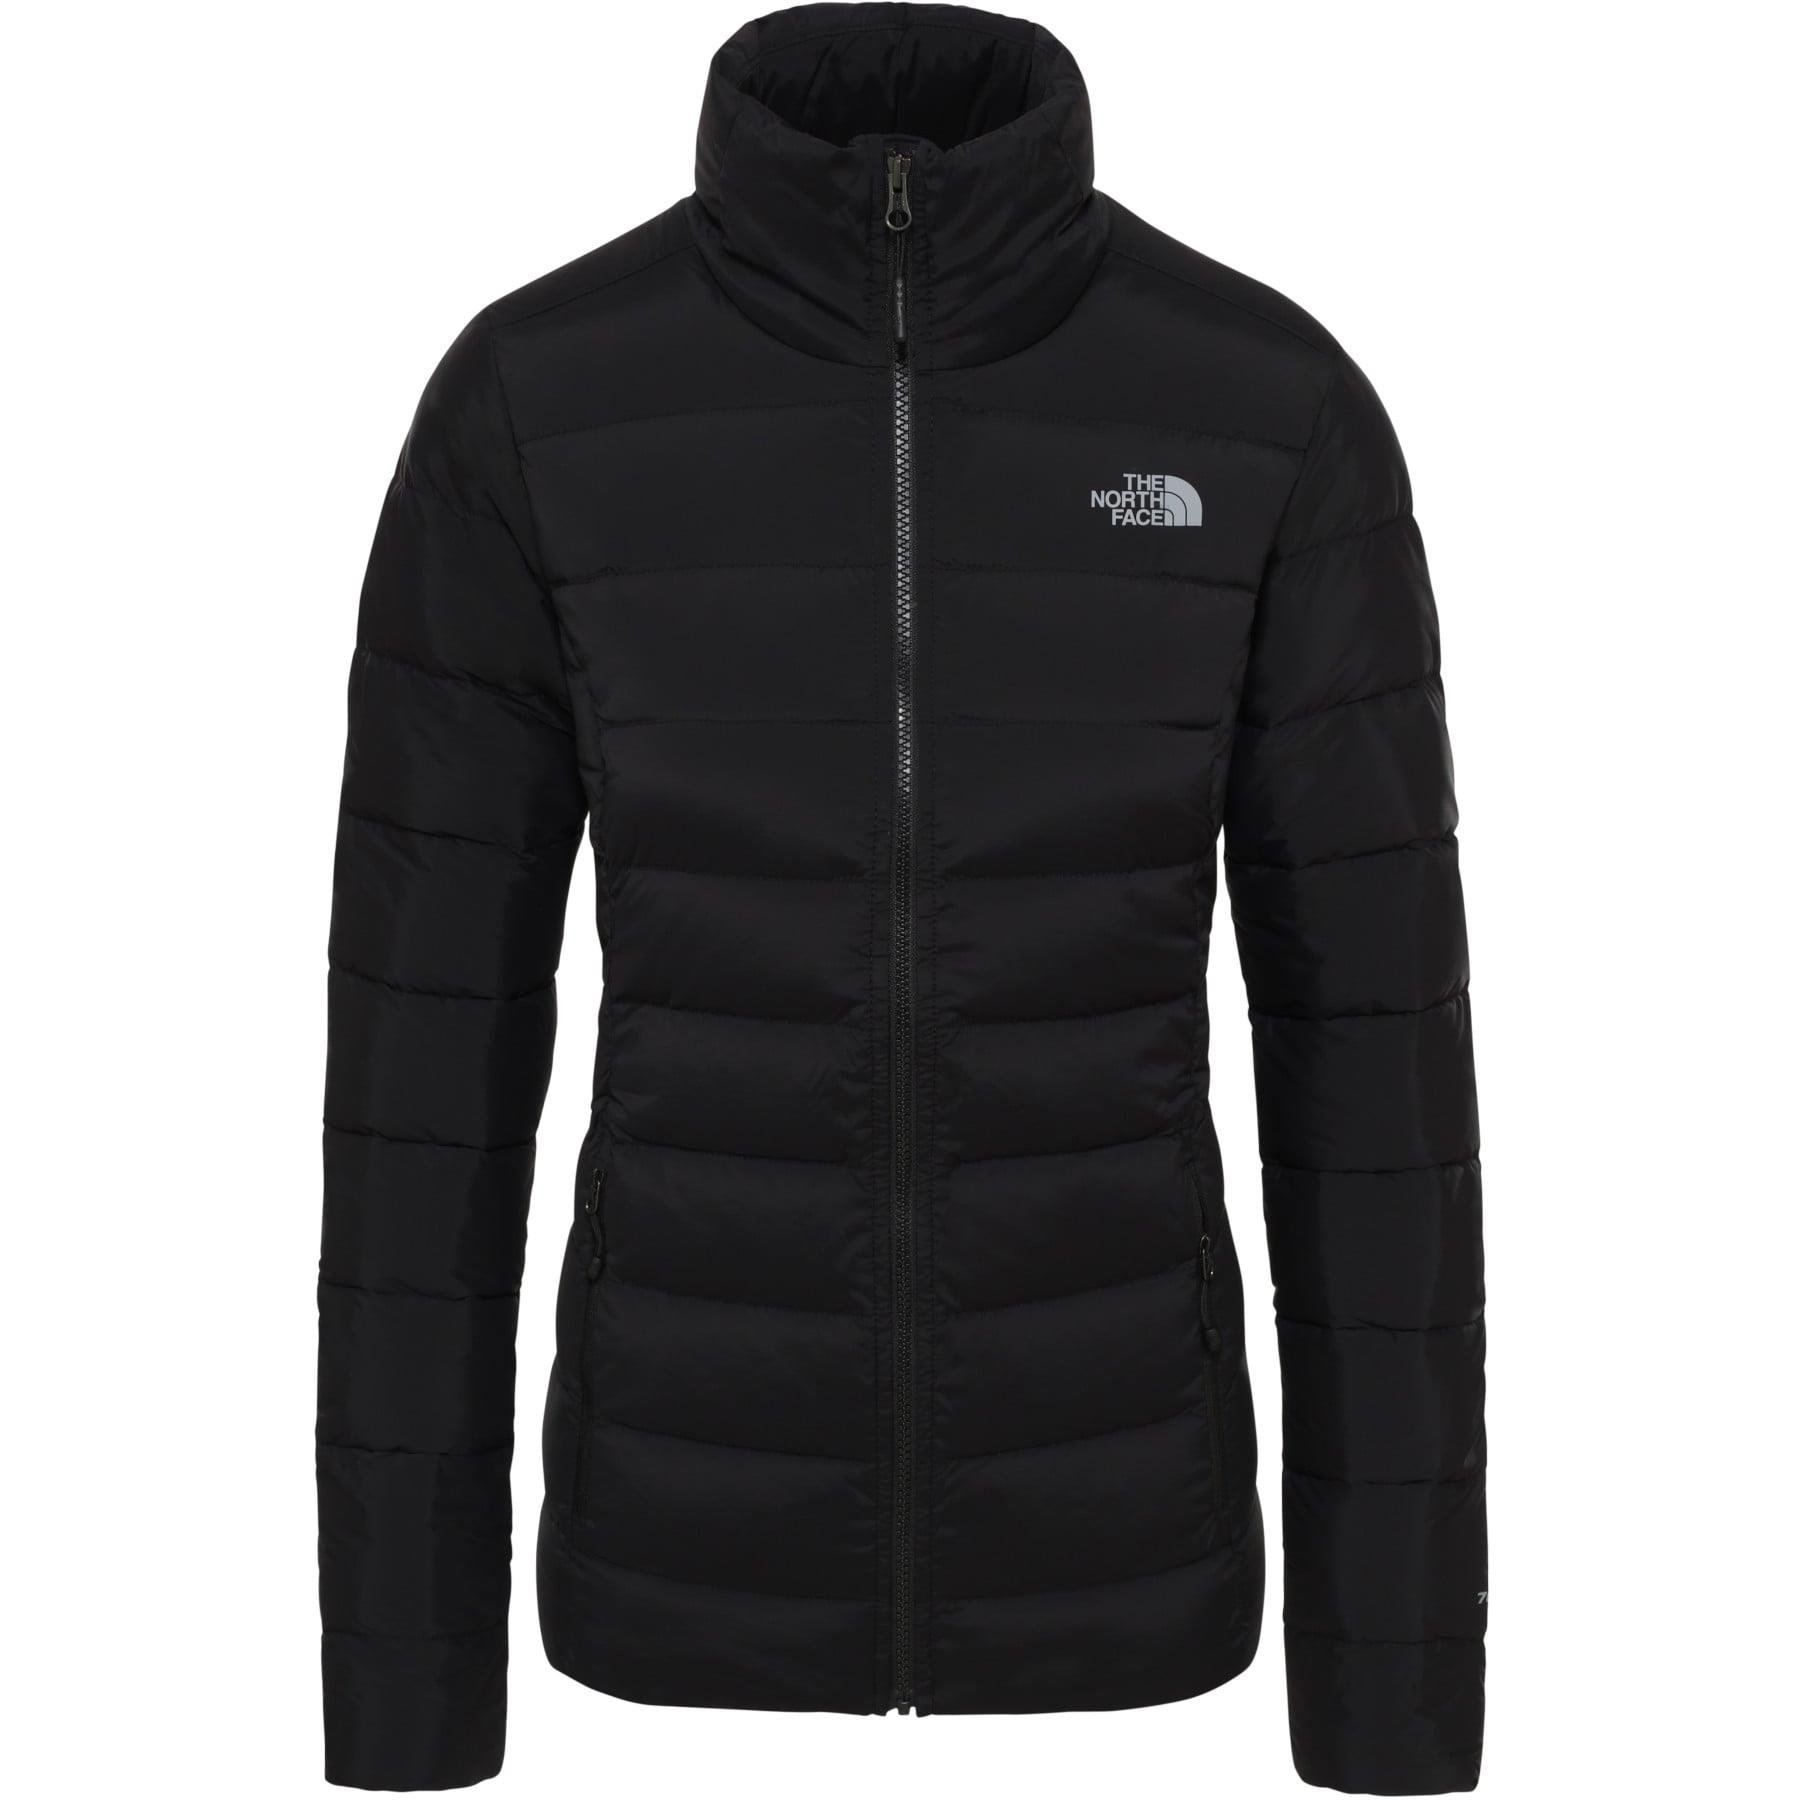 Zimowa kurtka puchowa The North Face Stretch Down T93O7EJK3